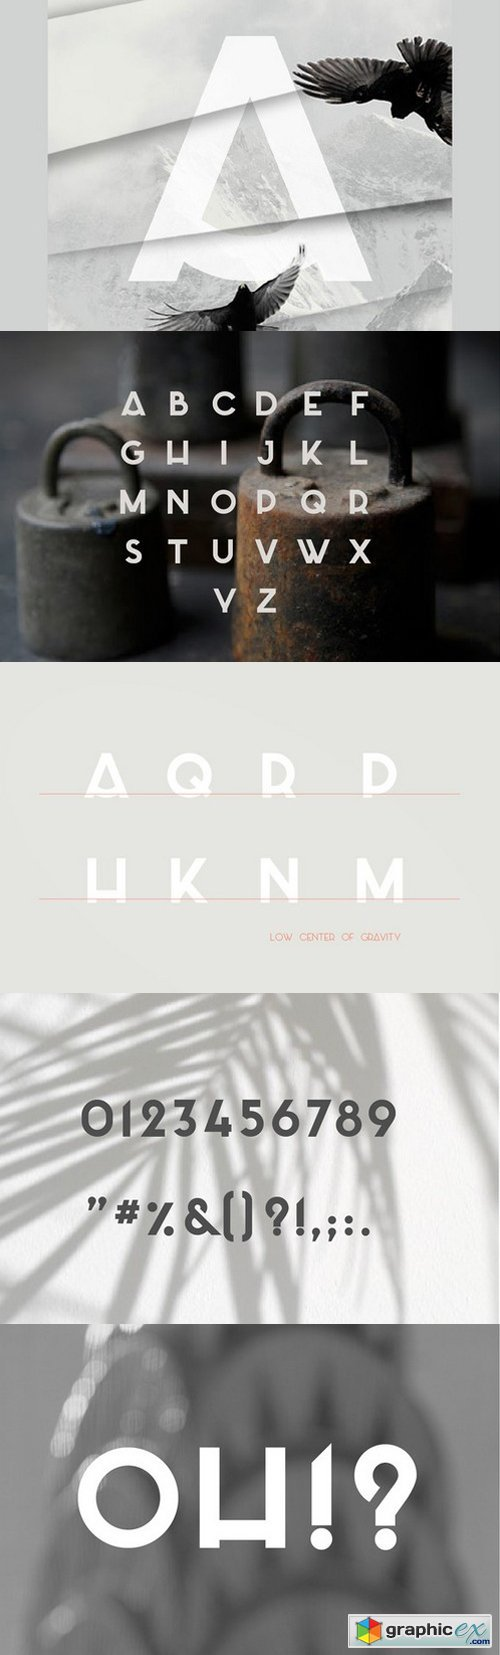 Azedo Font (full version)